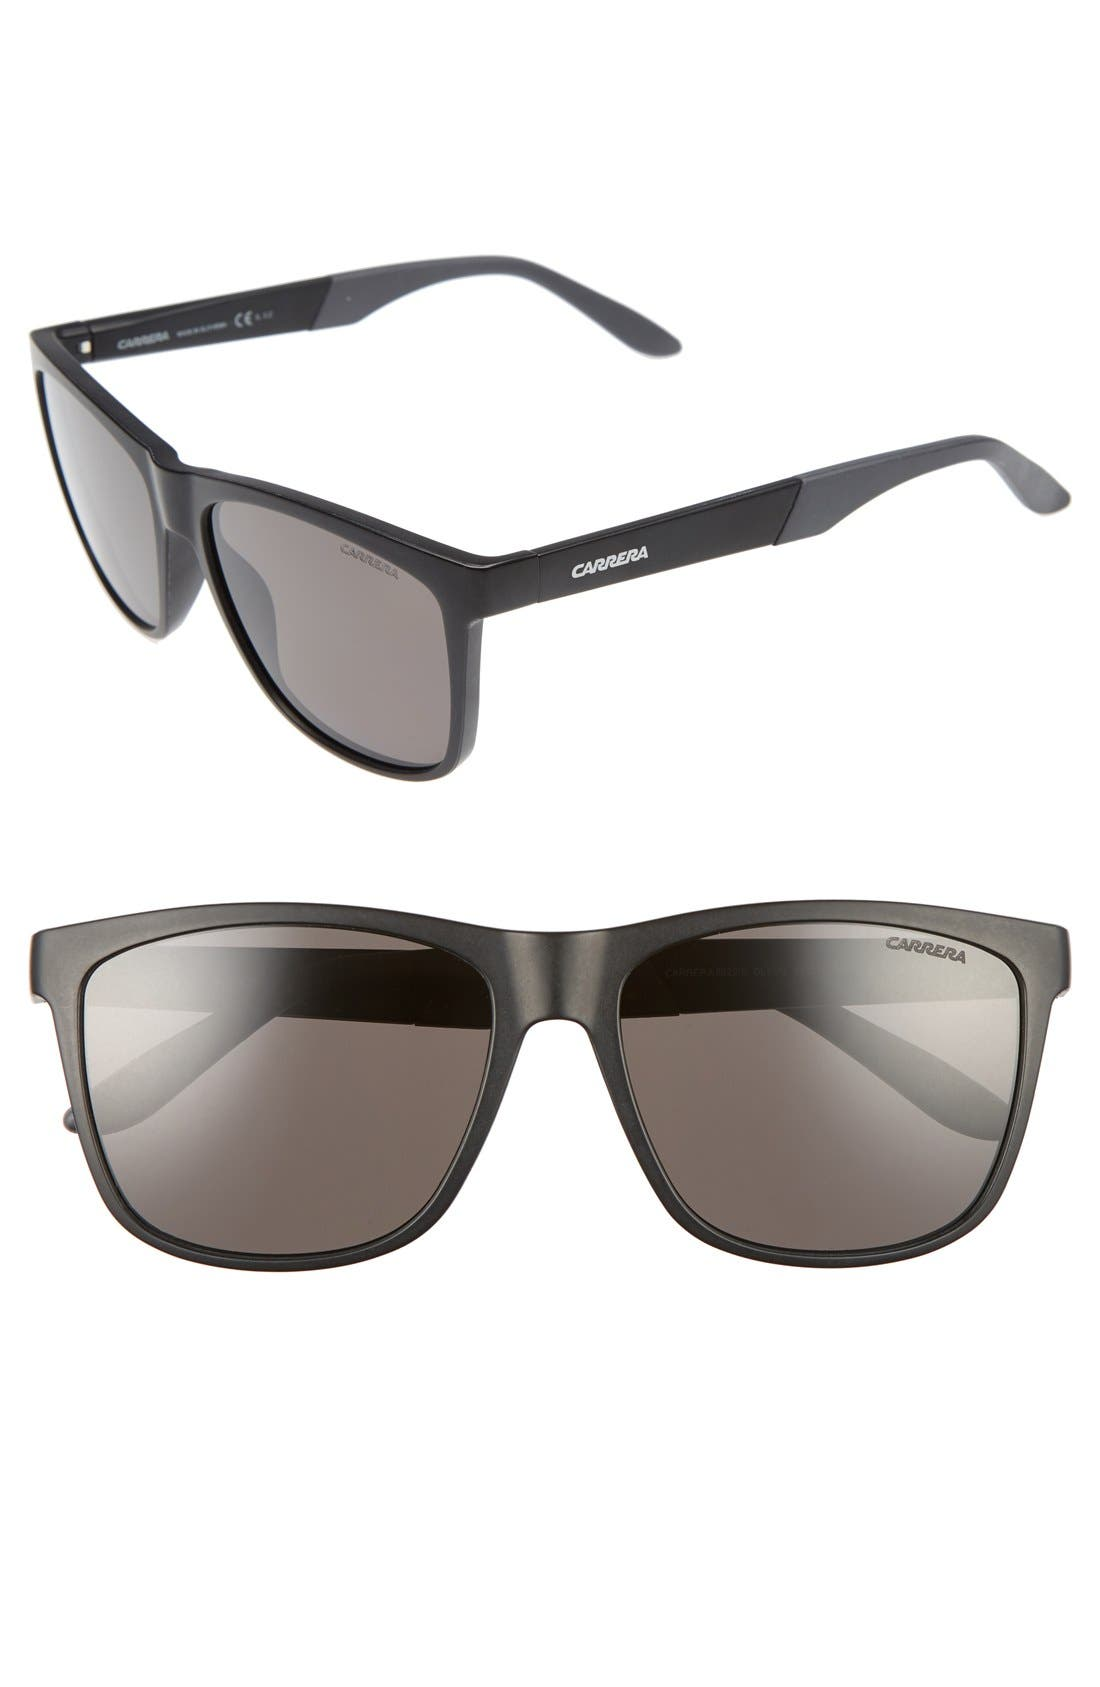 Carerra Eyewear 56mm Retro Polarized Sunglasses